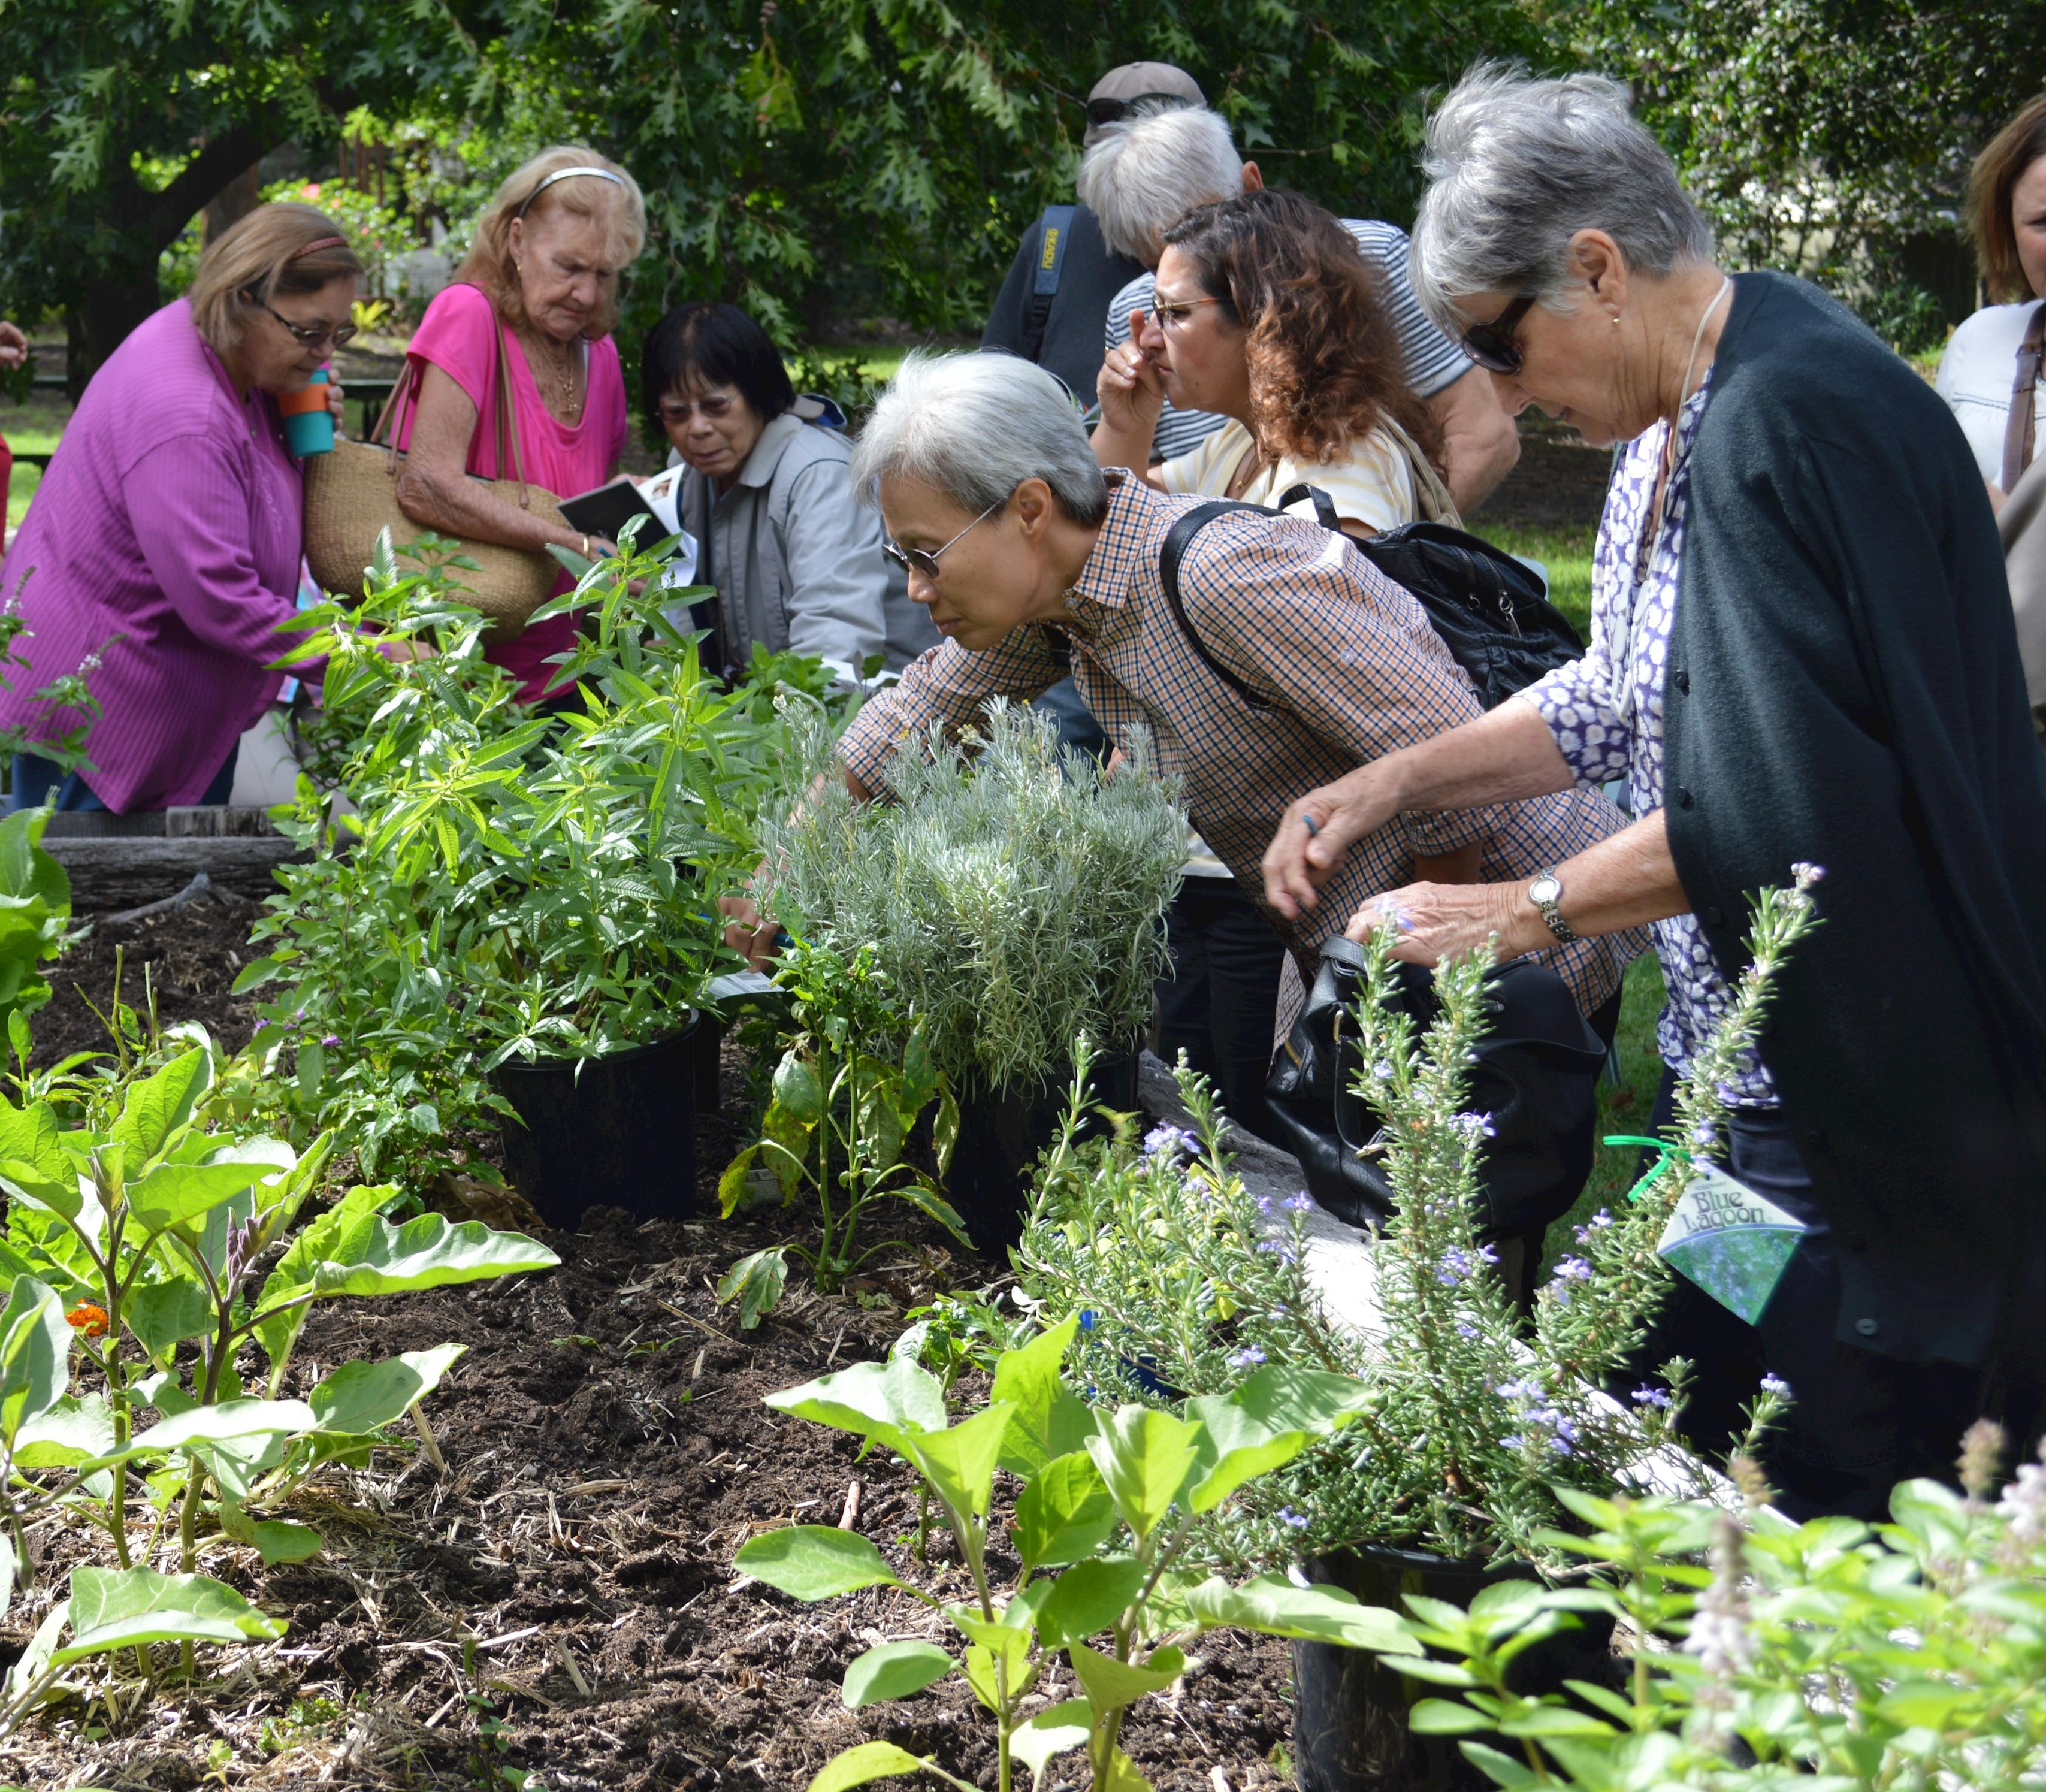 A group of people looking at a community garden